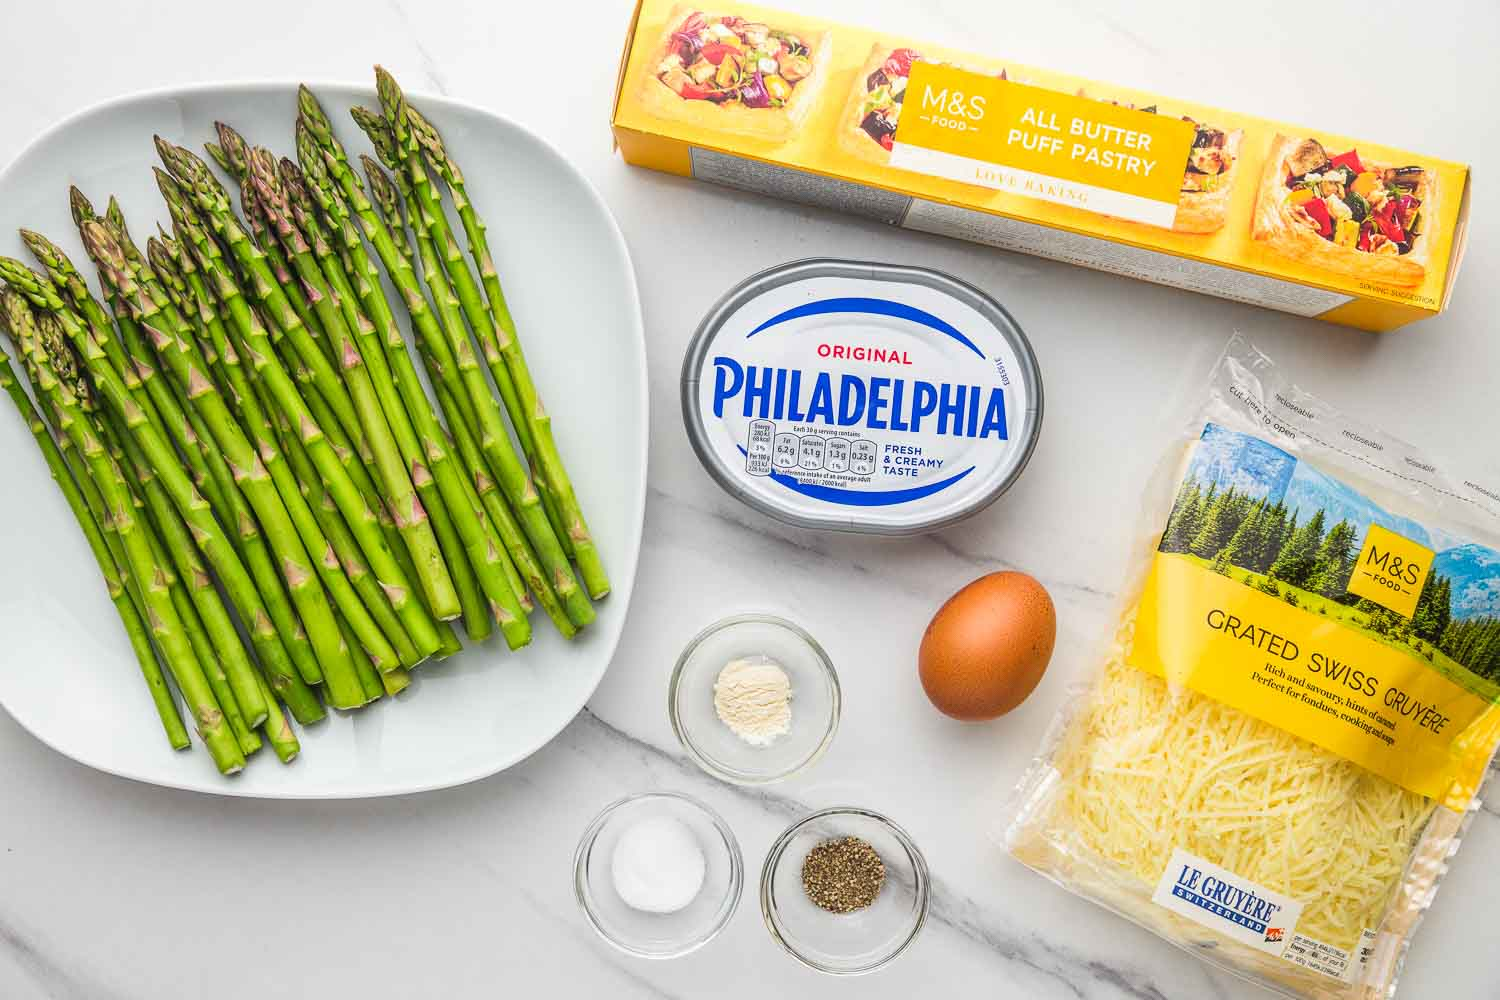 Ingredients needed for asparagus tart: fresh asparagus spears, all butter puff pastry, philadelphia cream cheese, grated swiss gruyere cheese, an egg for an egg wash, and seasonings.